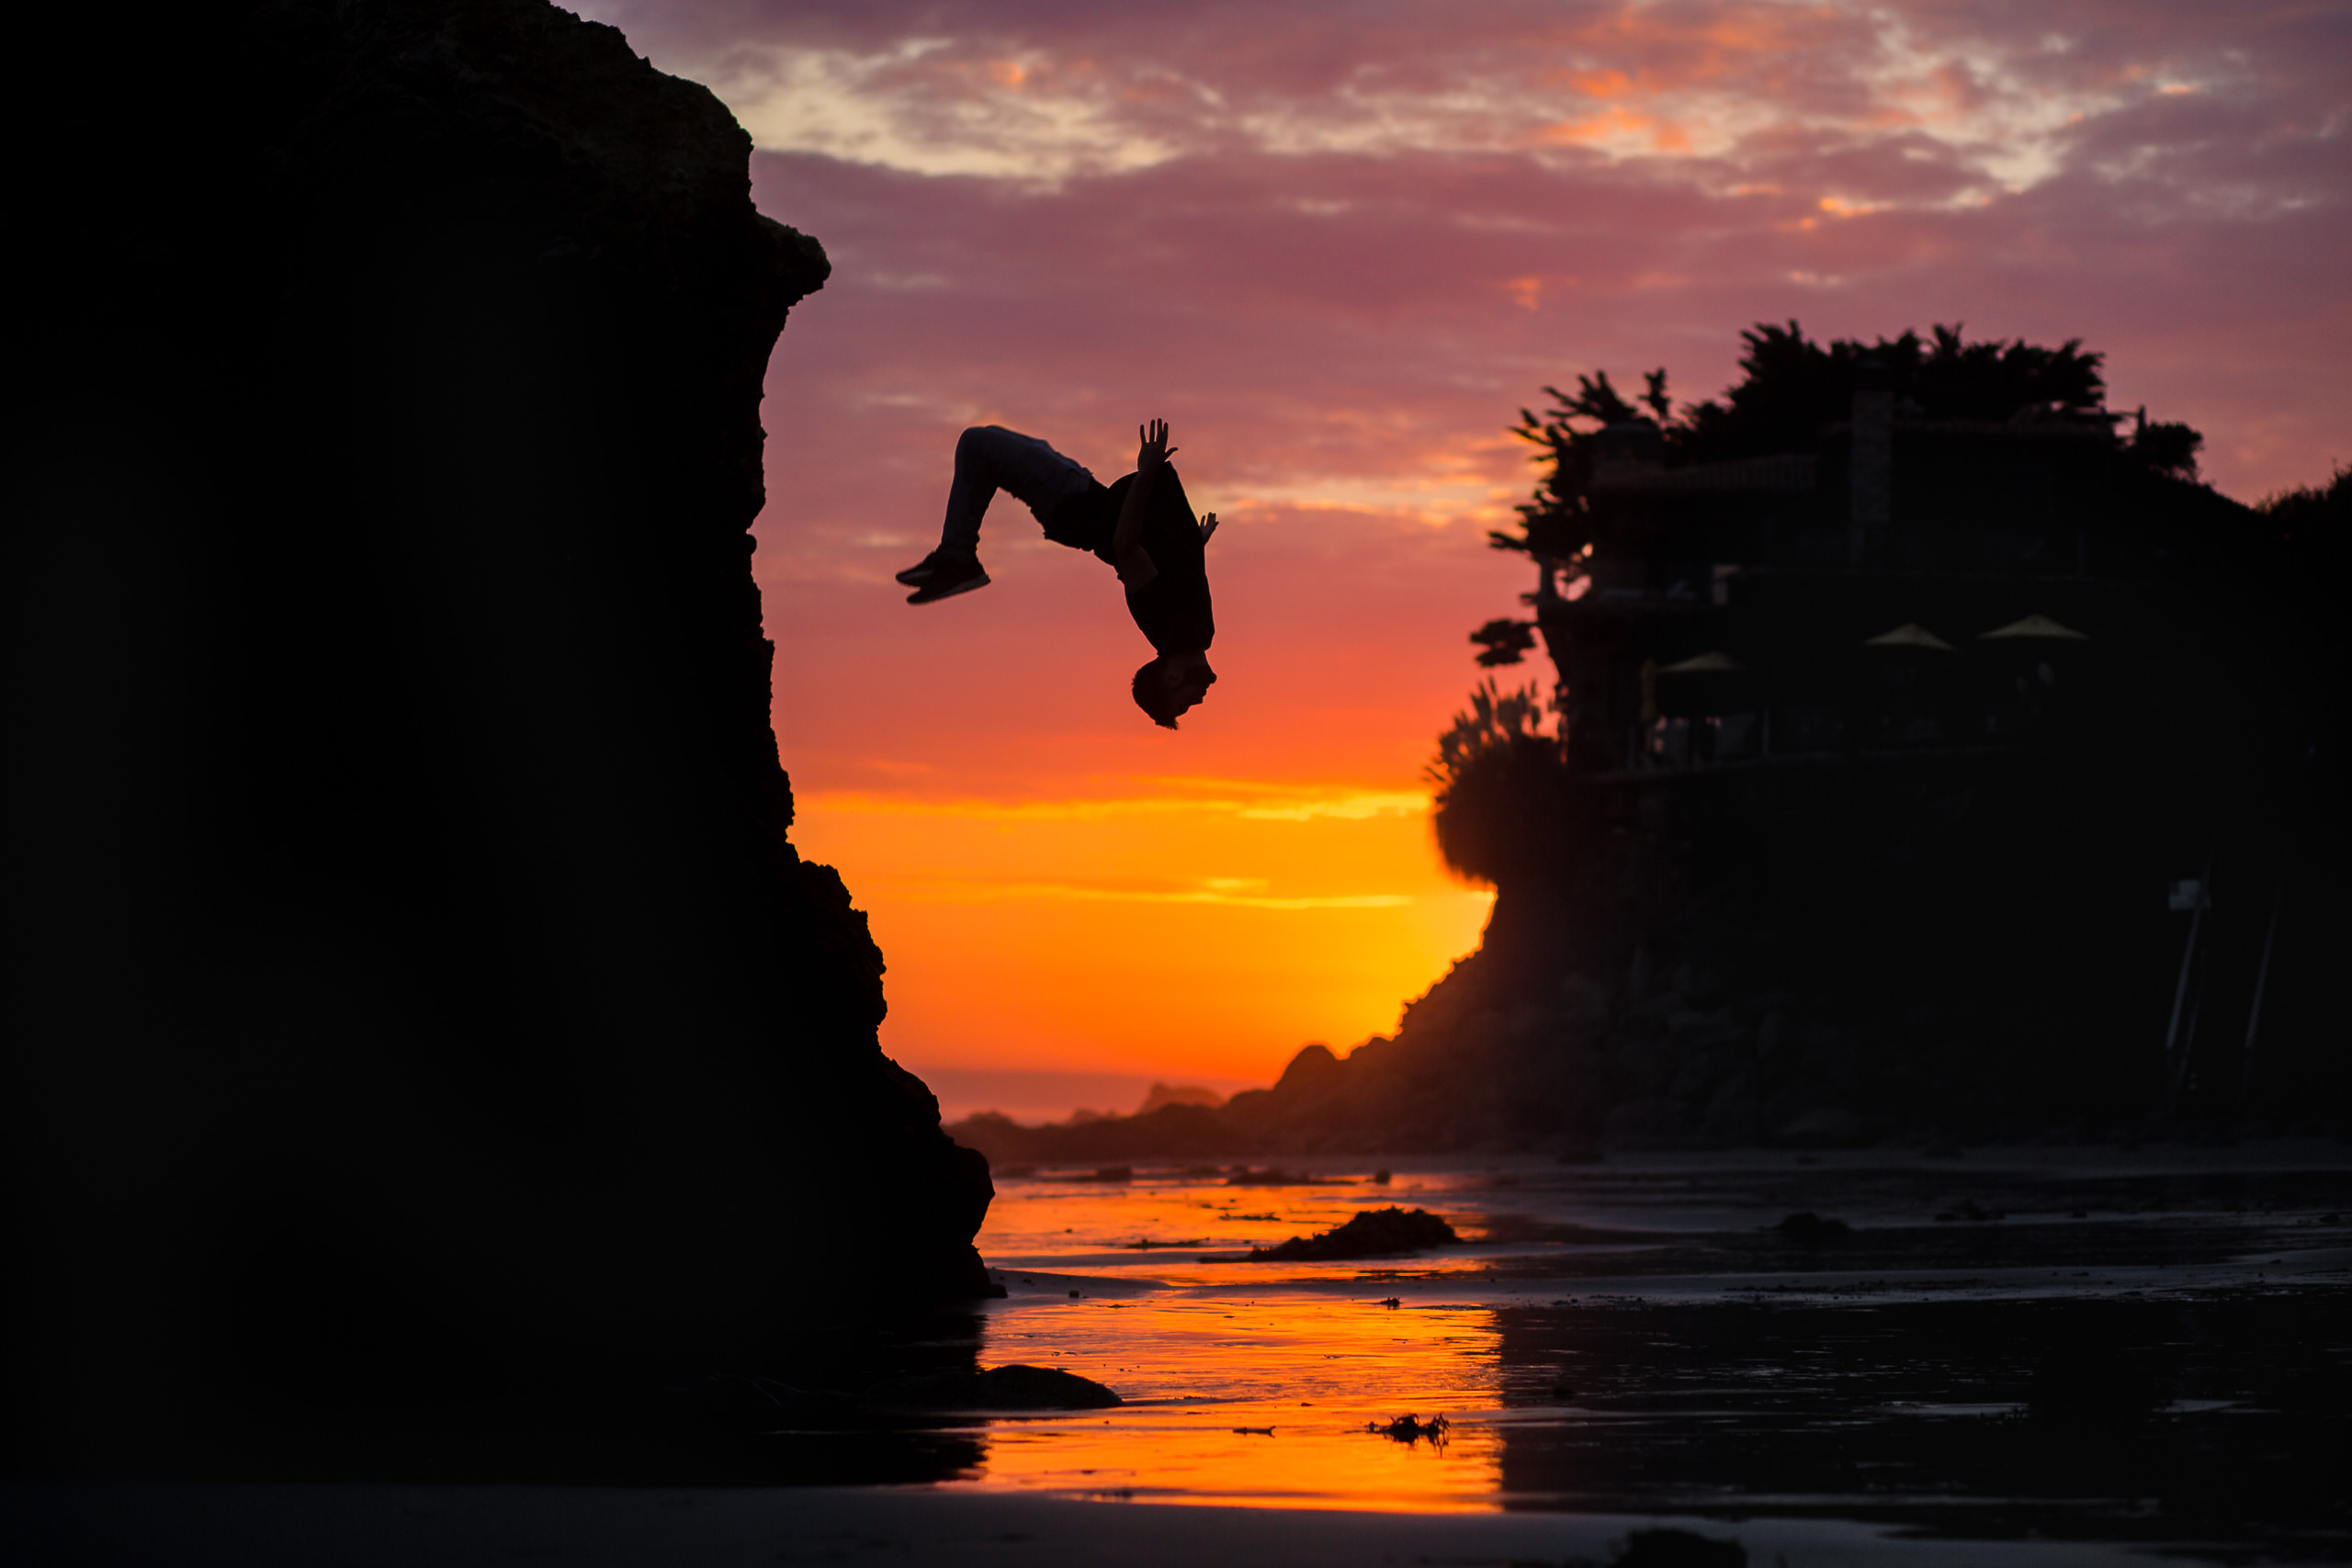 james kingston sunset beach flip